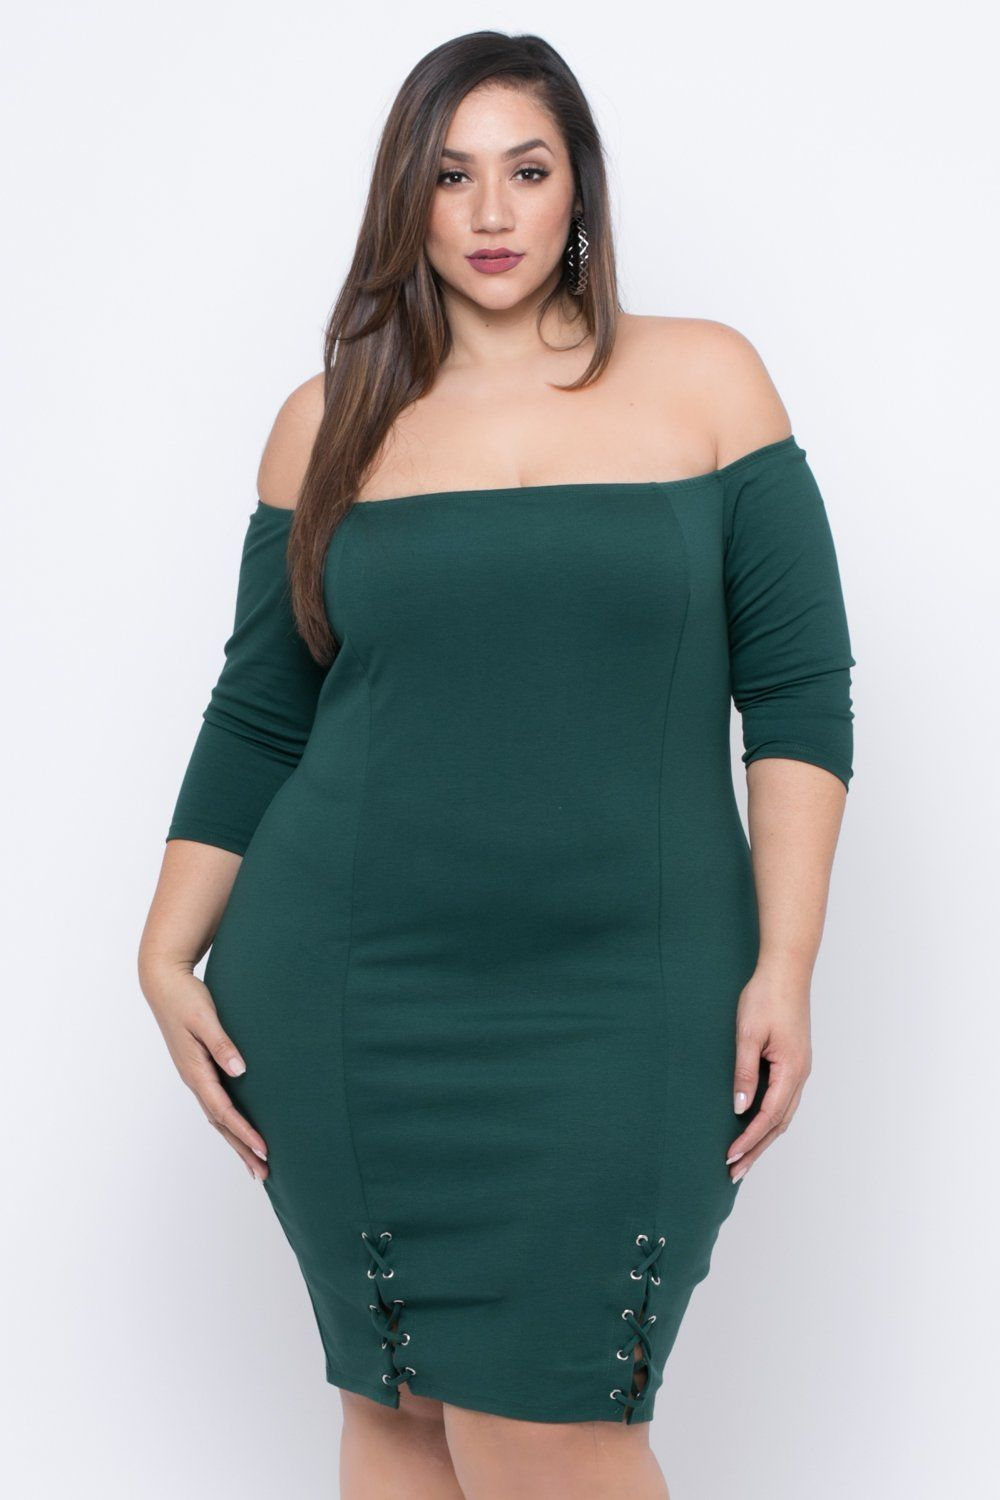 Green lace up dress  Plus Size Malory Lace Up Dress  Green  Neckline and Stretches